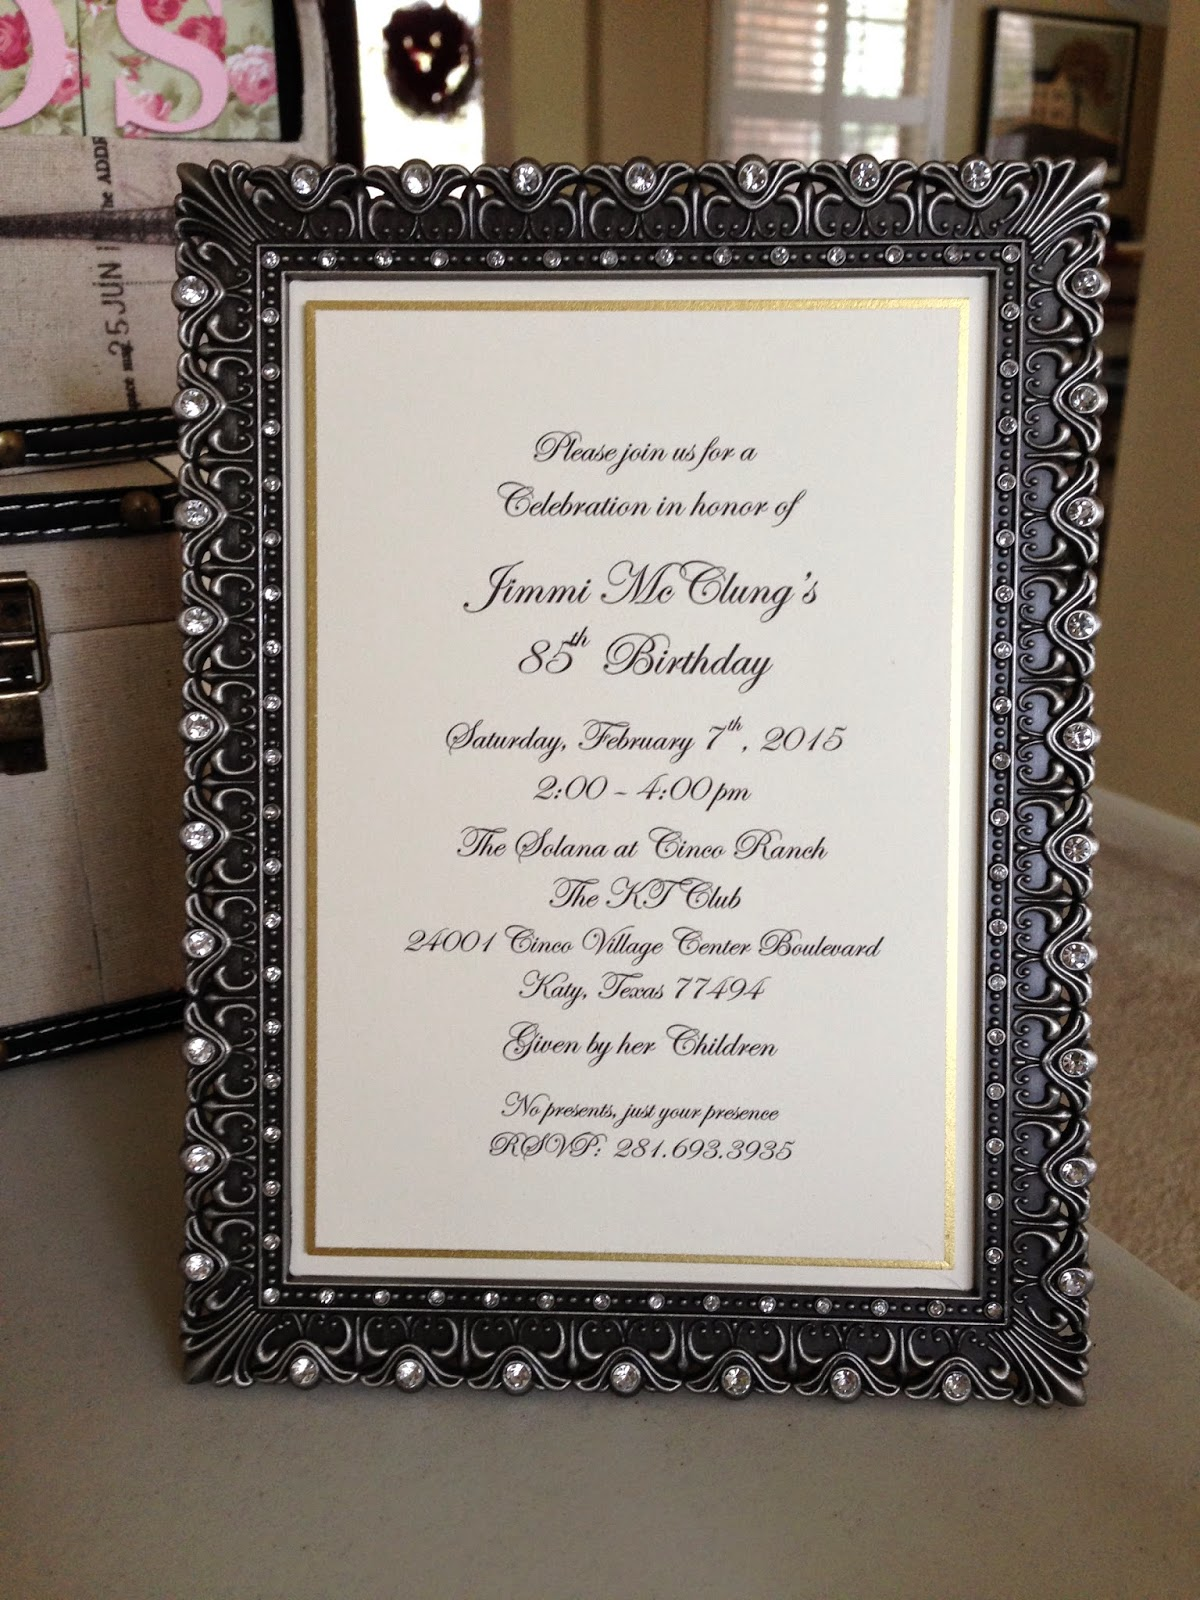 This Is The Official Invitation That We Had Printed Up I Thought It Would Be A Nice Touch To Include As Part Of Party Decorations